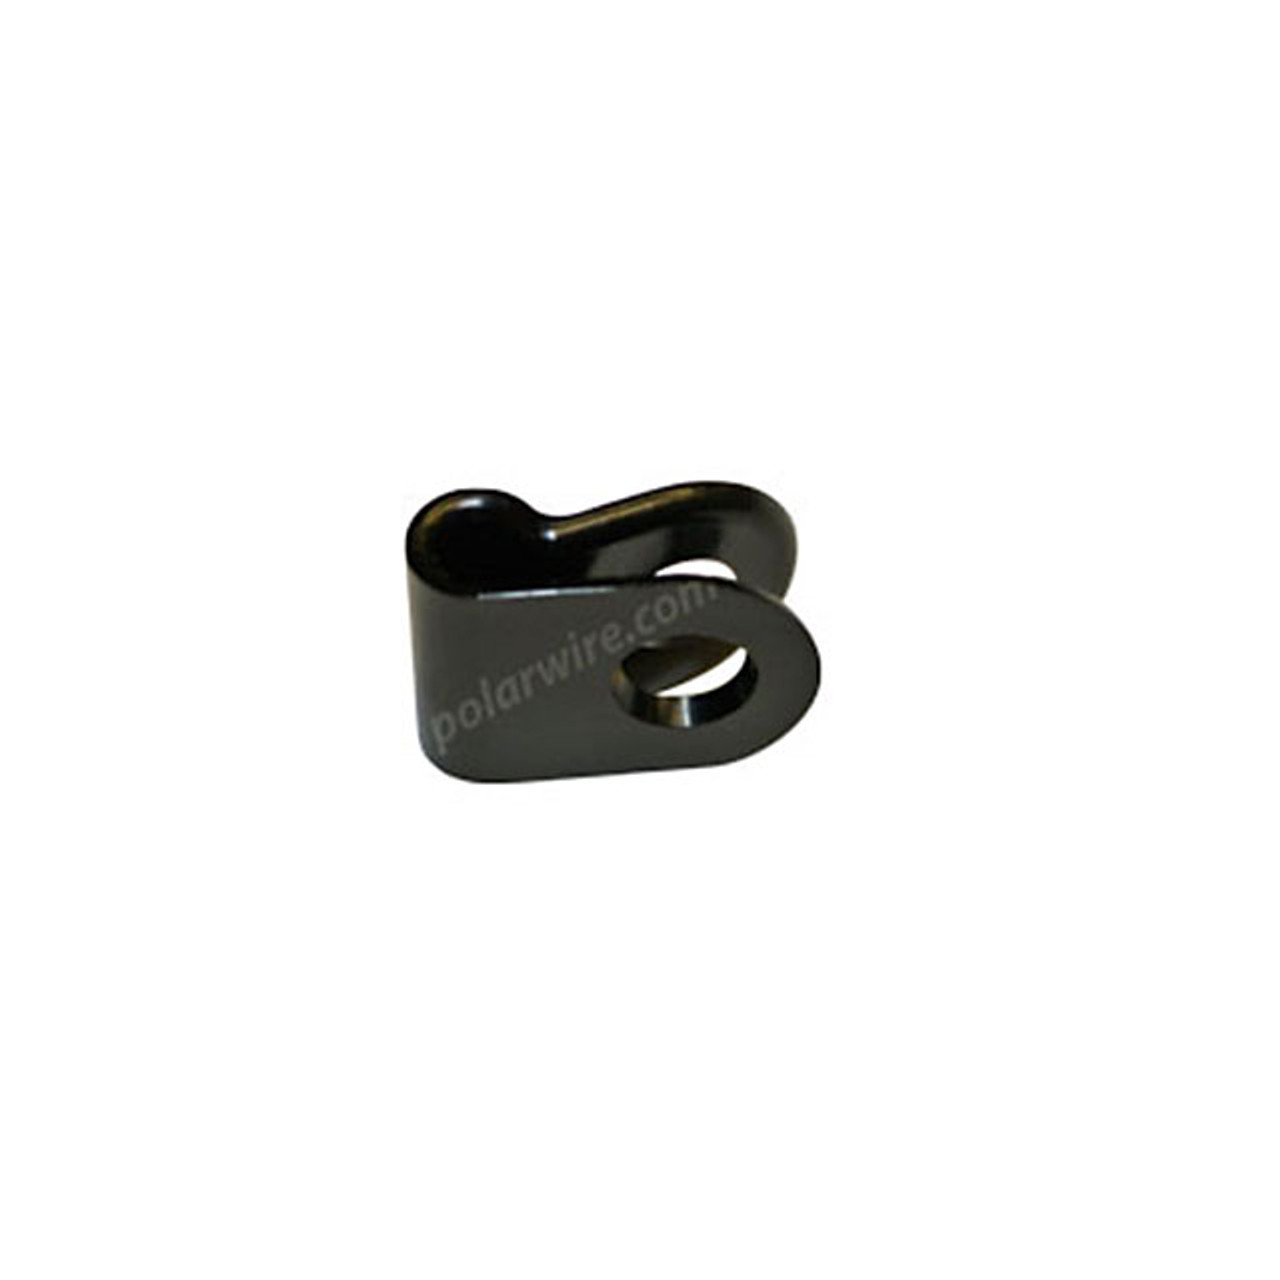 "1/8"" Black UV Nylon 6/6 Cable Clamp"